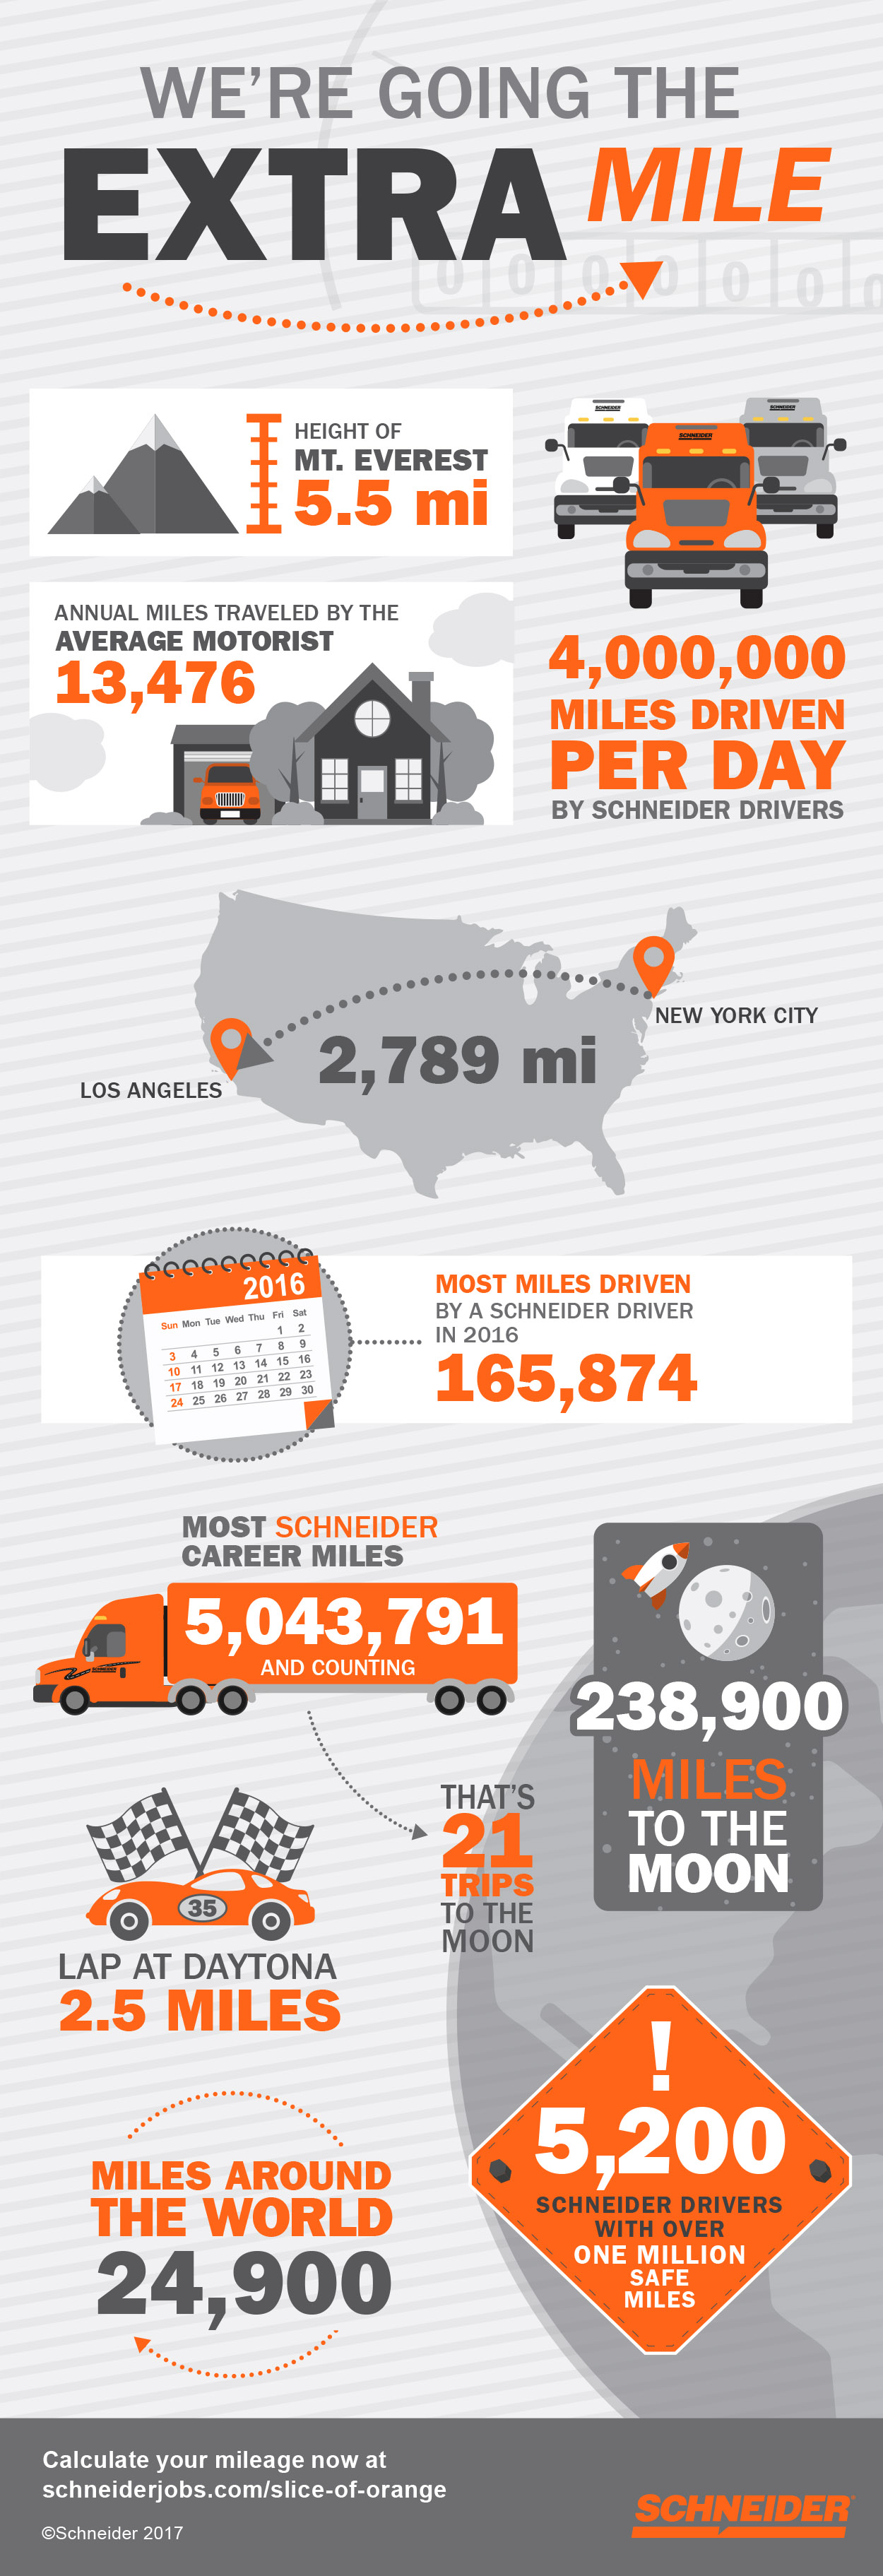 Mileage Calculator Infographic